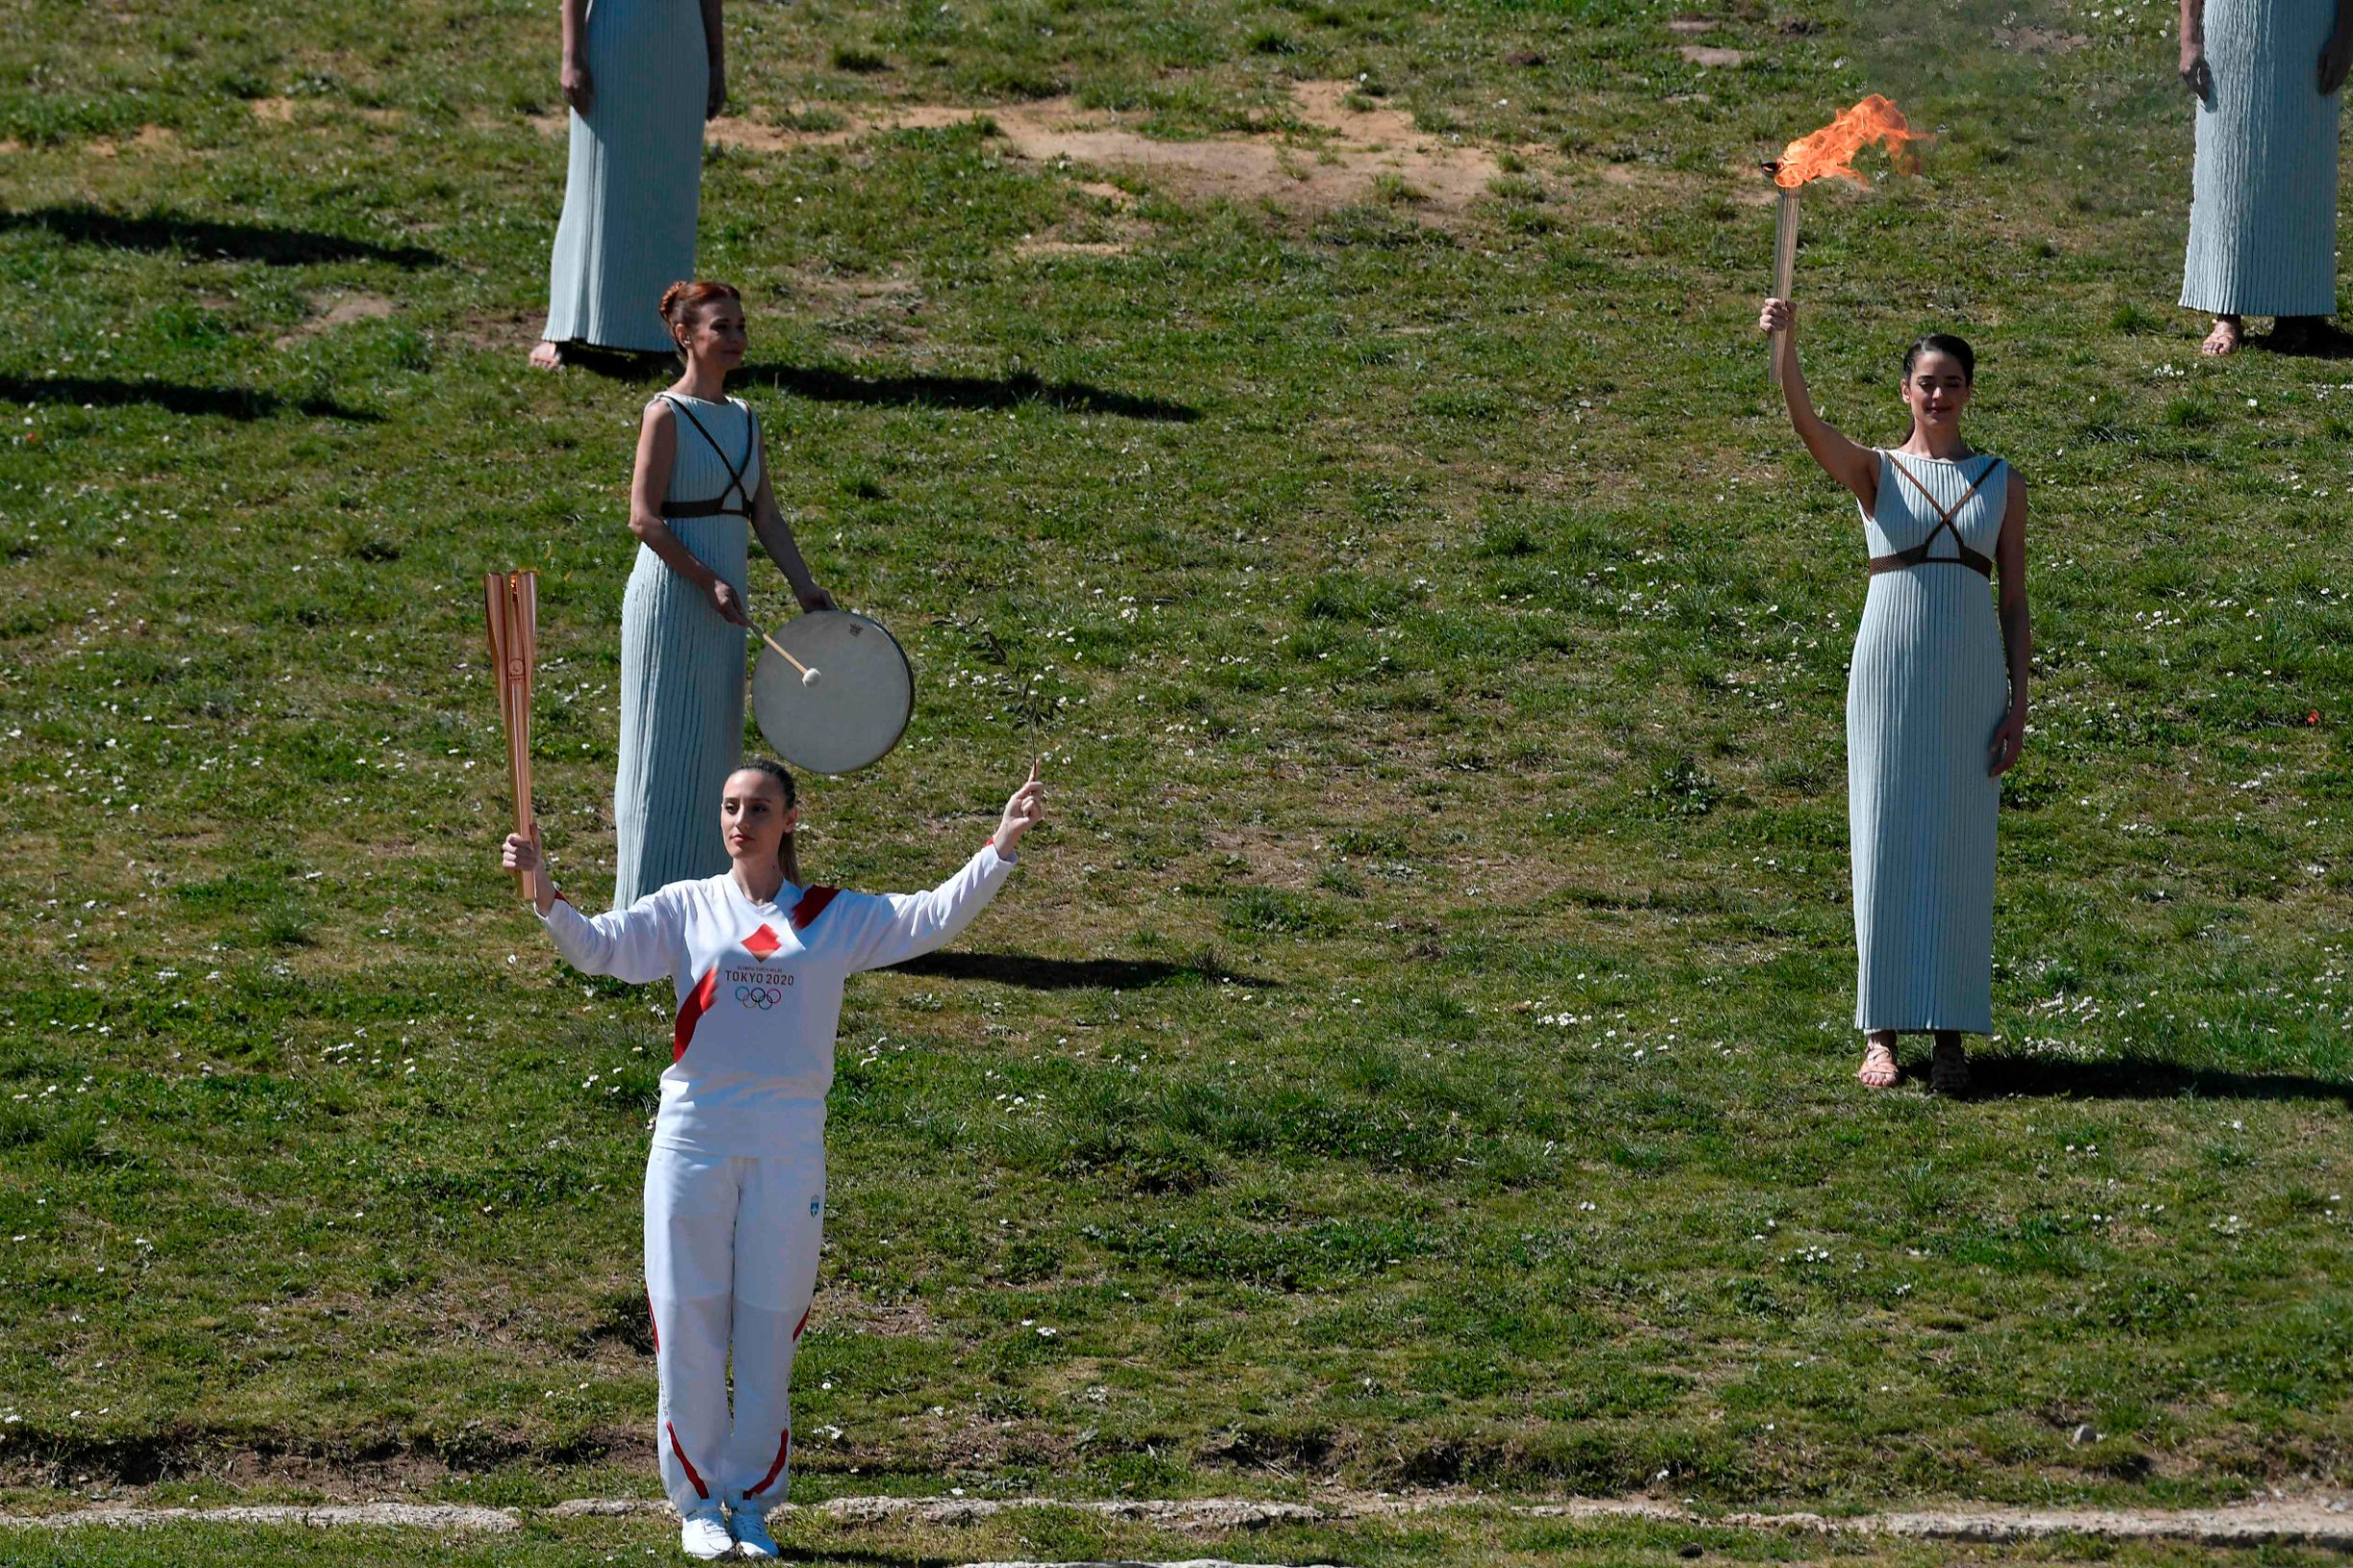 Greece's Anna Korakaki (L), Rio 2016 gold medallist in the 25m pistol shooting, torchbearer, holds the Olympic flame during the flame lighting ceremony on March 12, 2020 in ancient Olympia, ahead of the Tokyo 2020 Olympic Games. (Photo by LOUISA GOULIAMAKI / AFP)